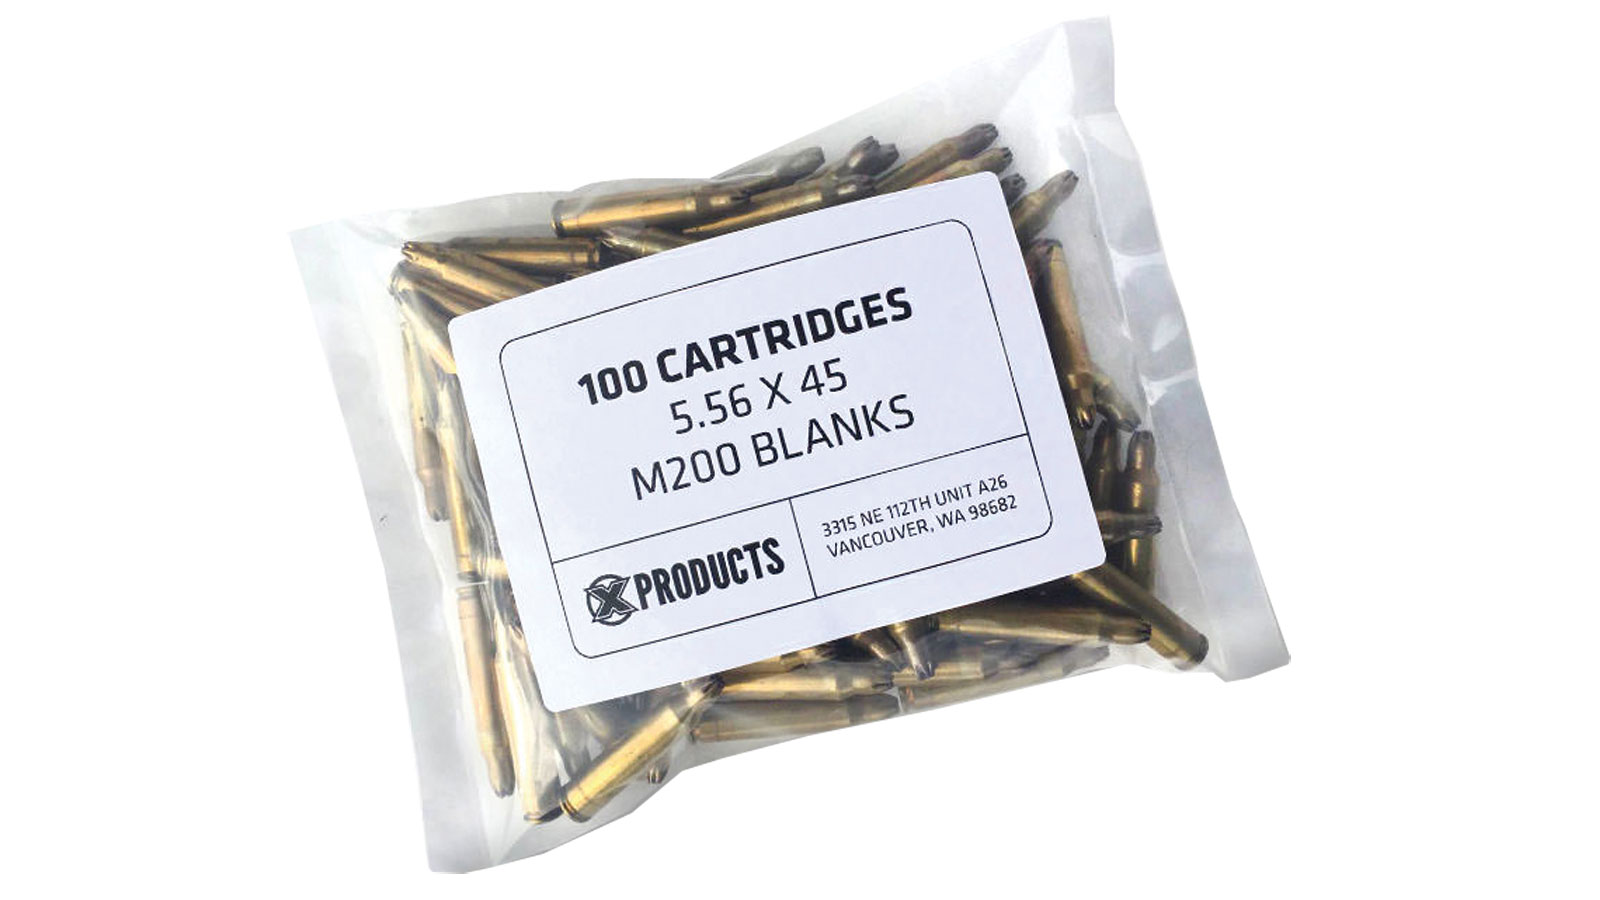 Xprod M200 Blanks 5.56x45 100 Pack